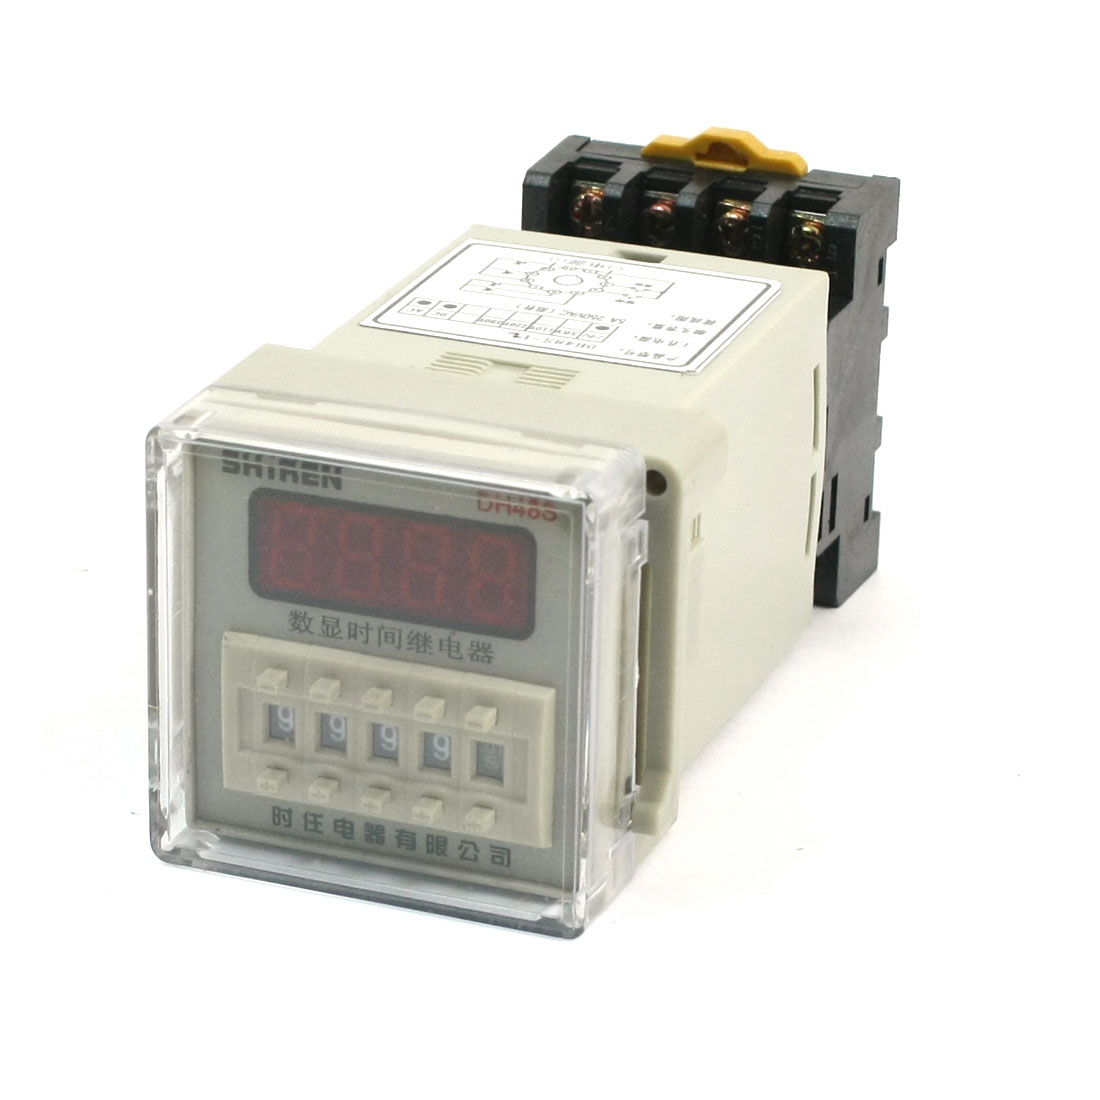 AC/DC 12V 0.01s-9999h 35mm DIN Rail Mount Plug in Socket Panel Digit Time Delay Timer